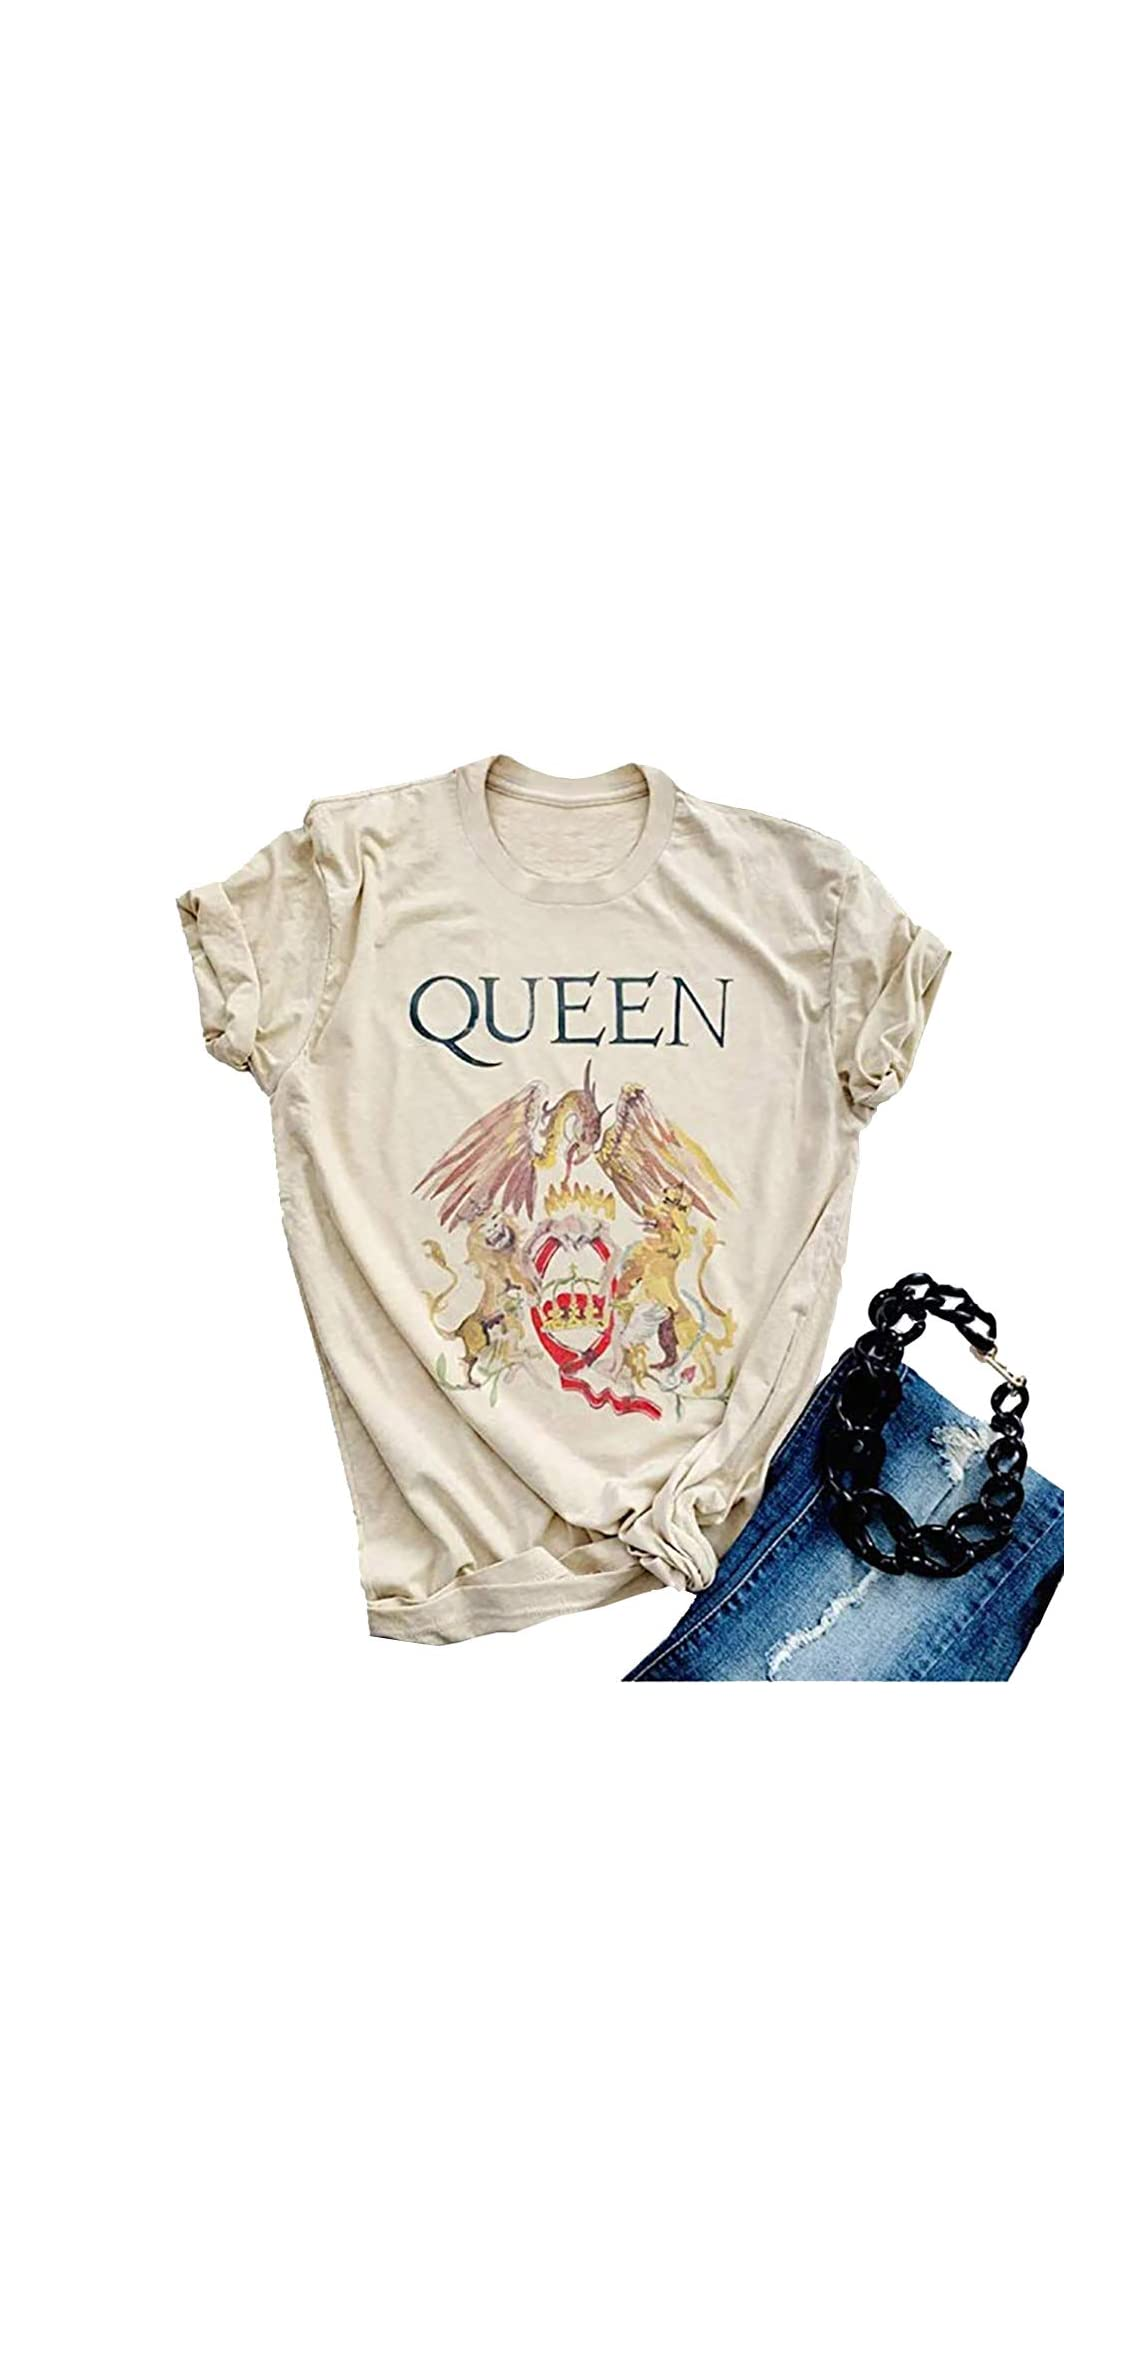 Queen Shirts Vintage Tshirt Music Concert Tees For Women Short